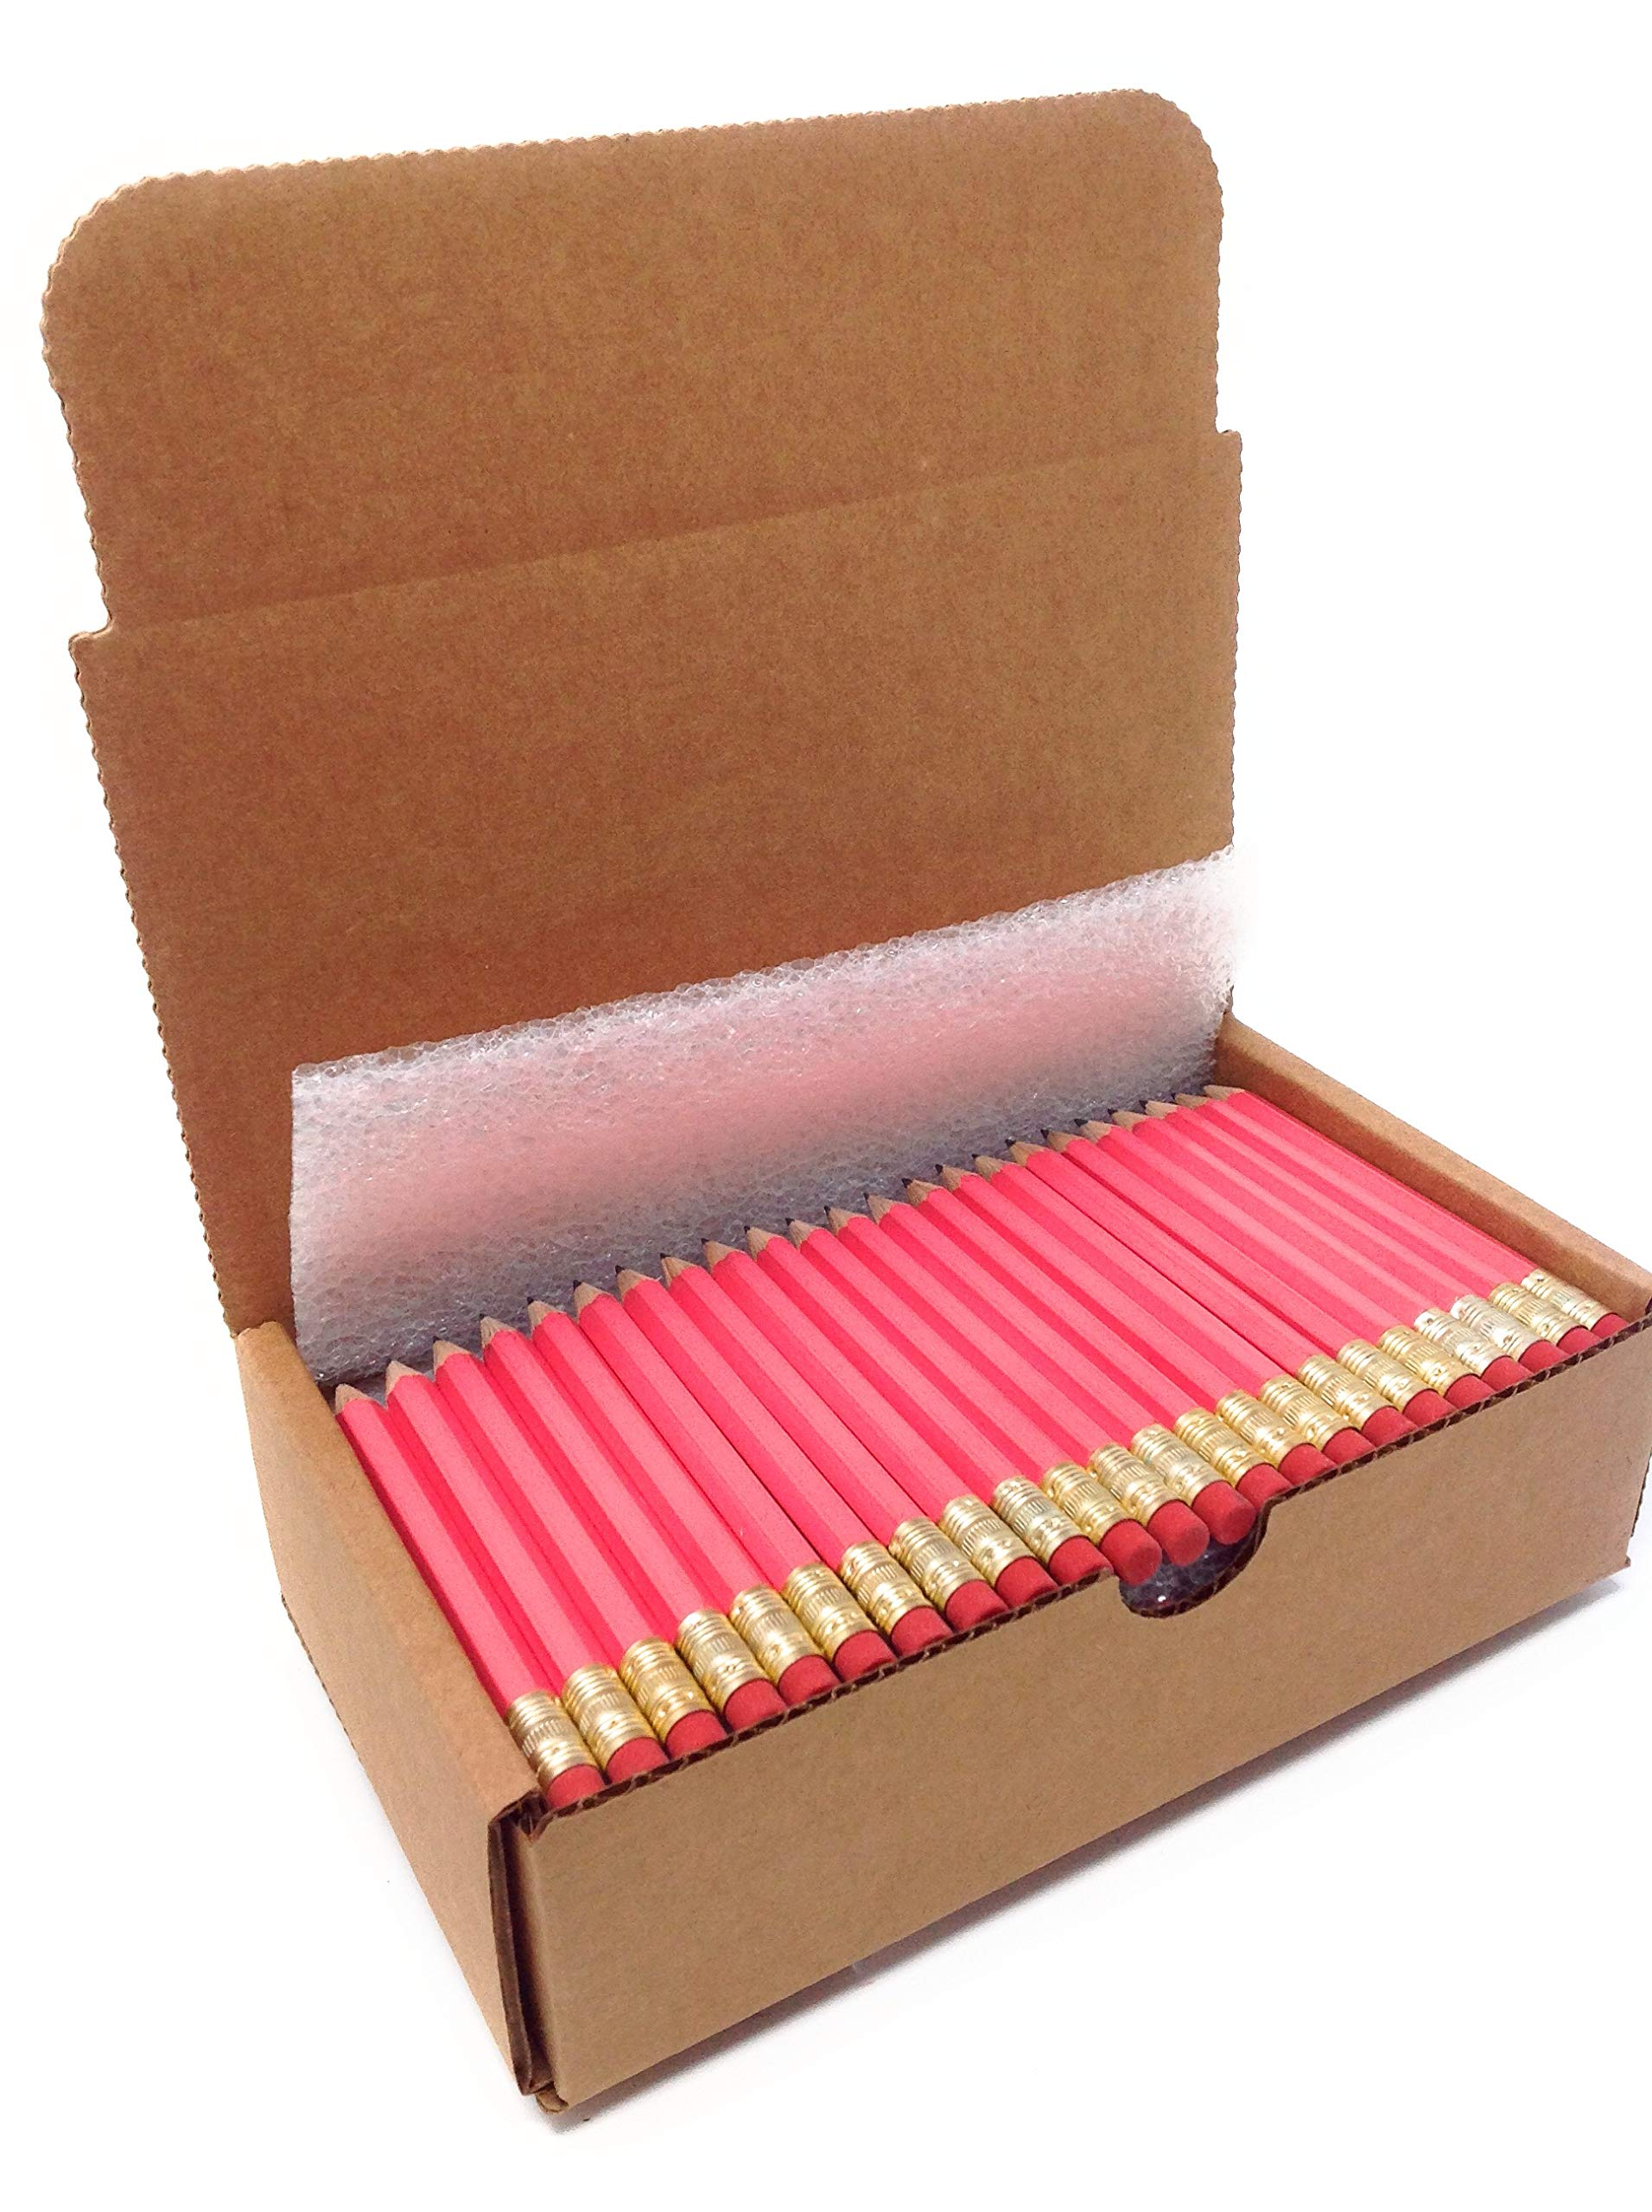 Half Pencils with Eraser, Golf, Classroom, Events, Hexagon, Sharpened, Box of 144, Color: Pink by beacon-ridge (Image #2)